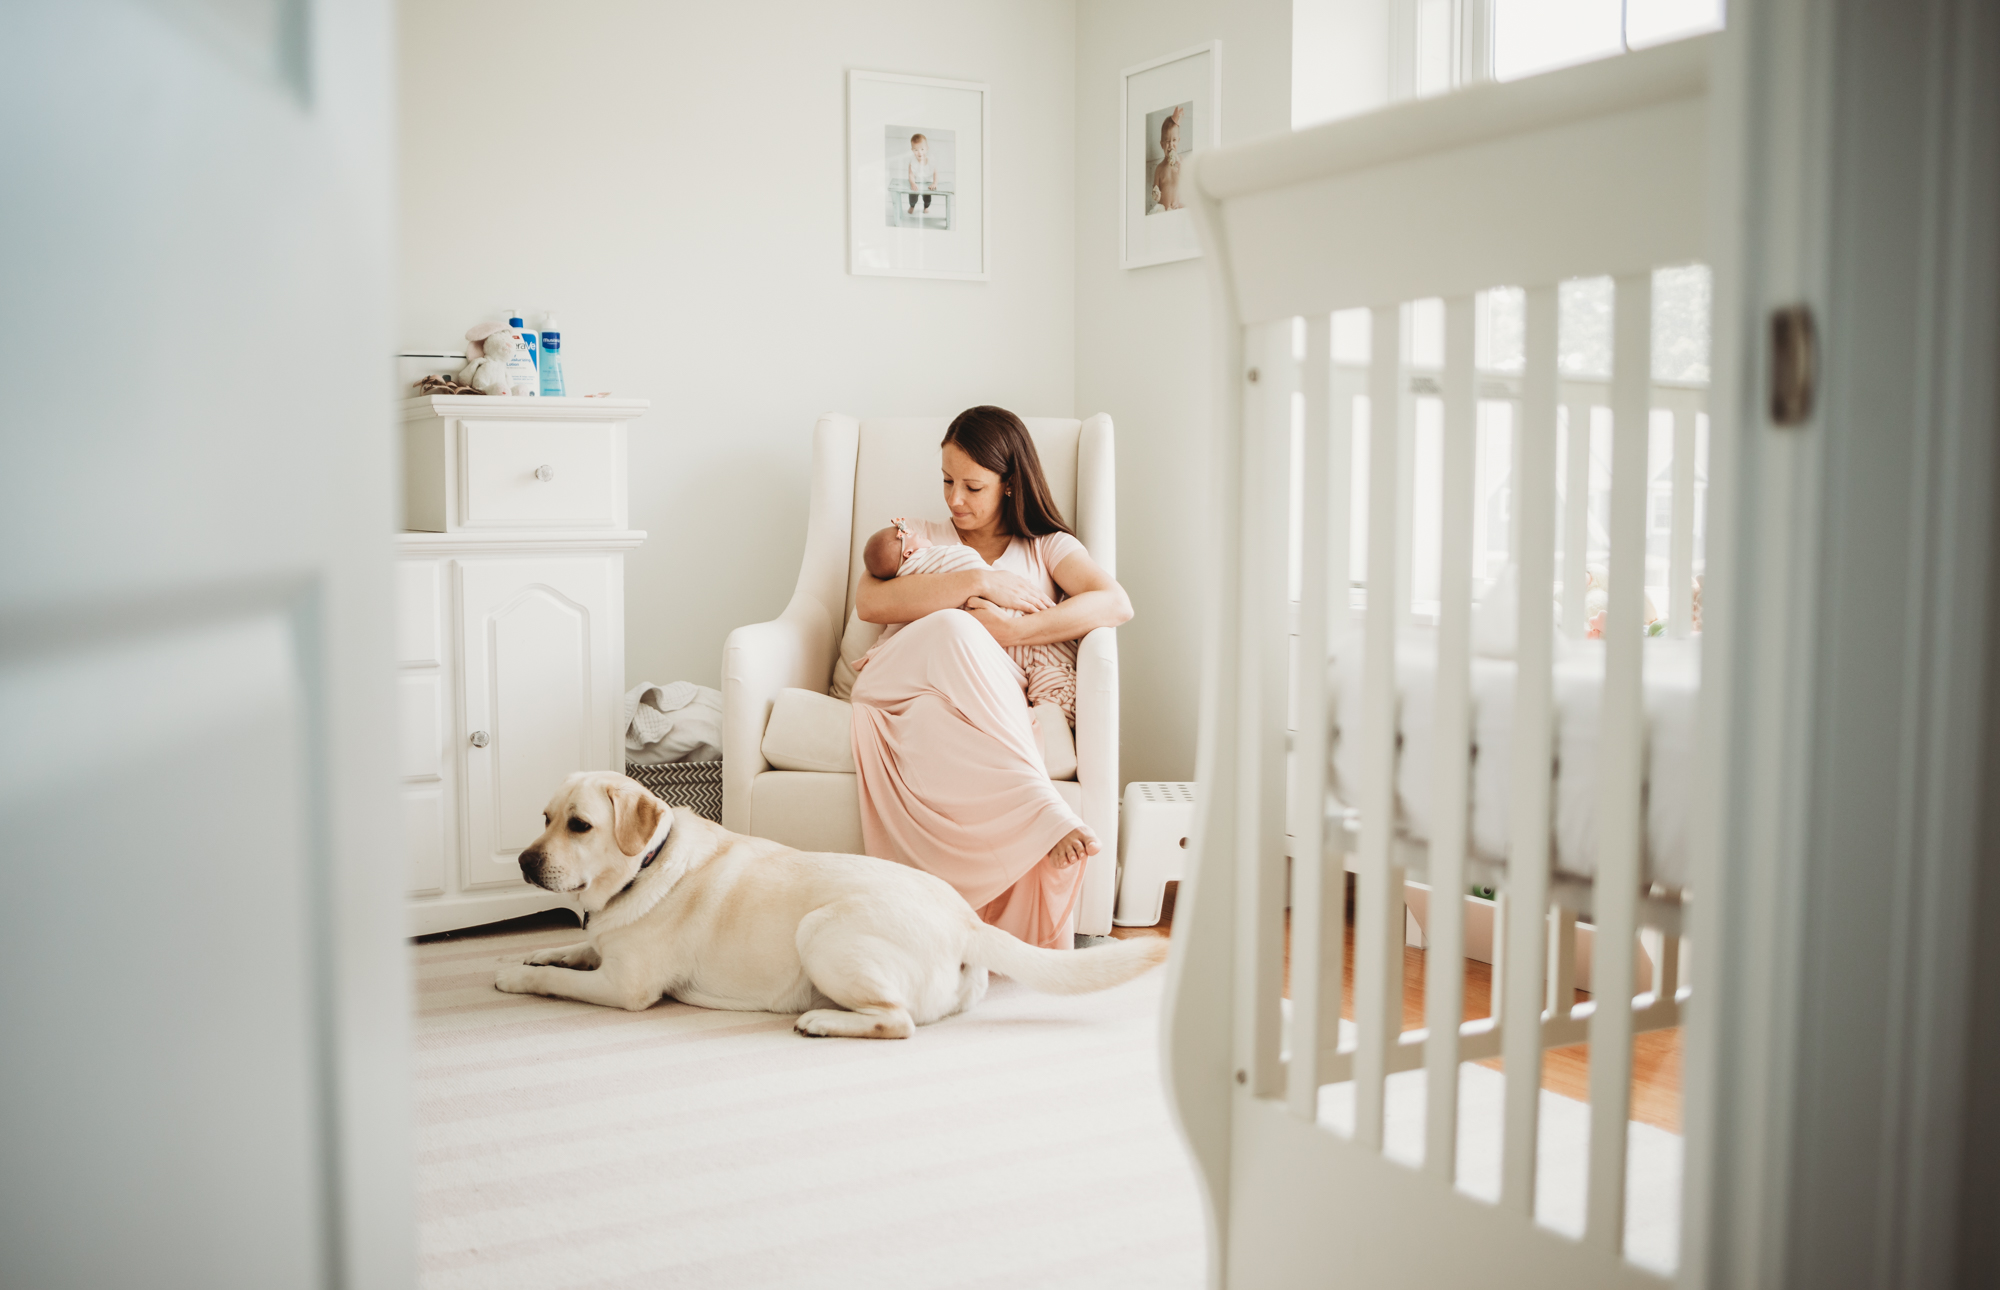 New mom in pale pink dress on rocker with newborn baby and white laborador on the floor at her feet. Wayland, Massachusetts newborn photographer in-home session. Lifestyle newborn photography in Greater Boston.